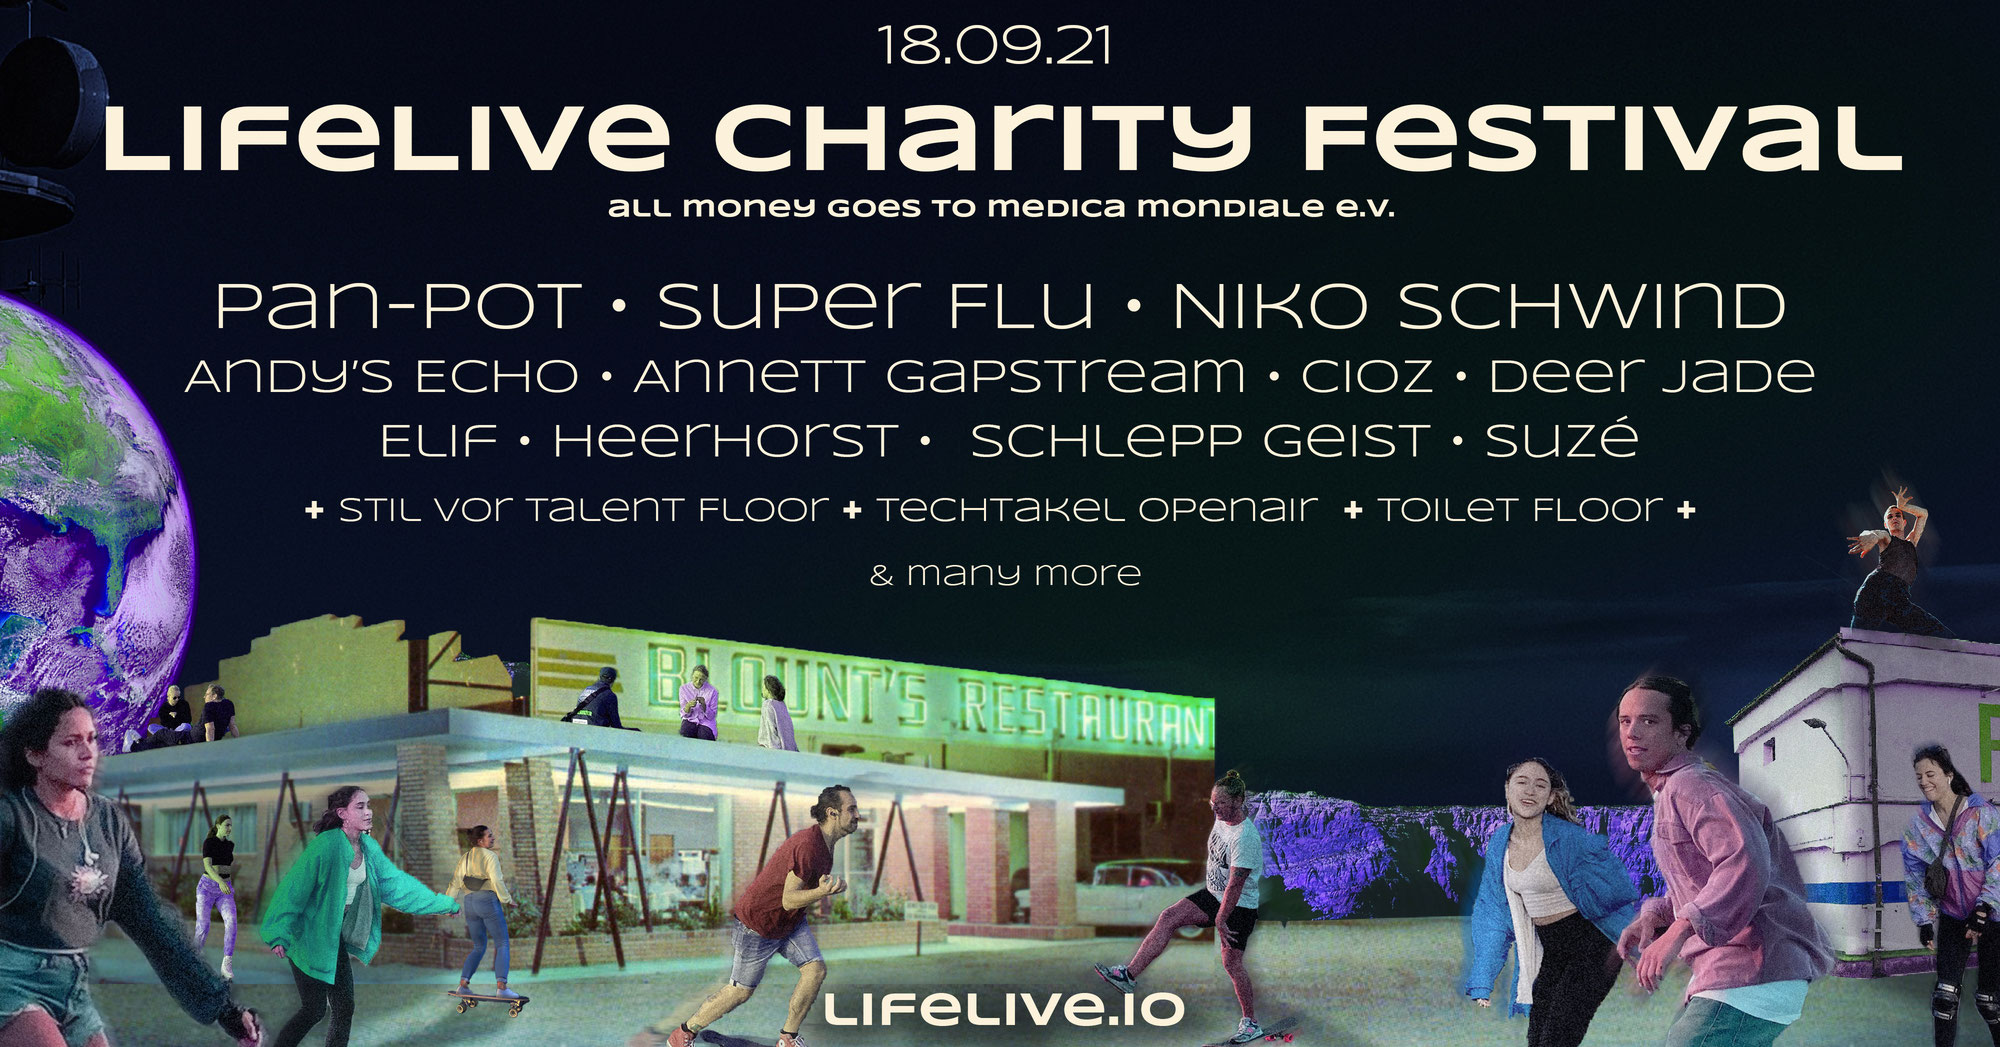 LIFELIVE CHARITY FESTIVAL 18 Sep 2021